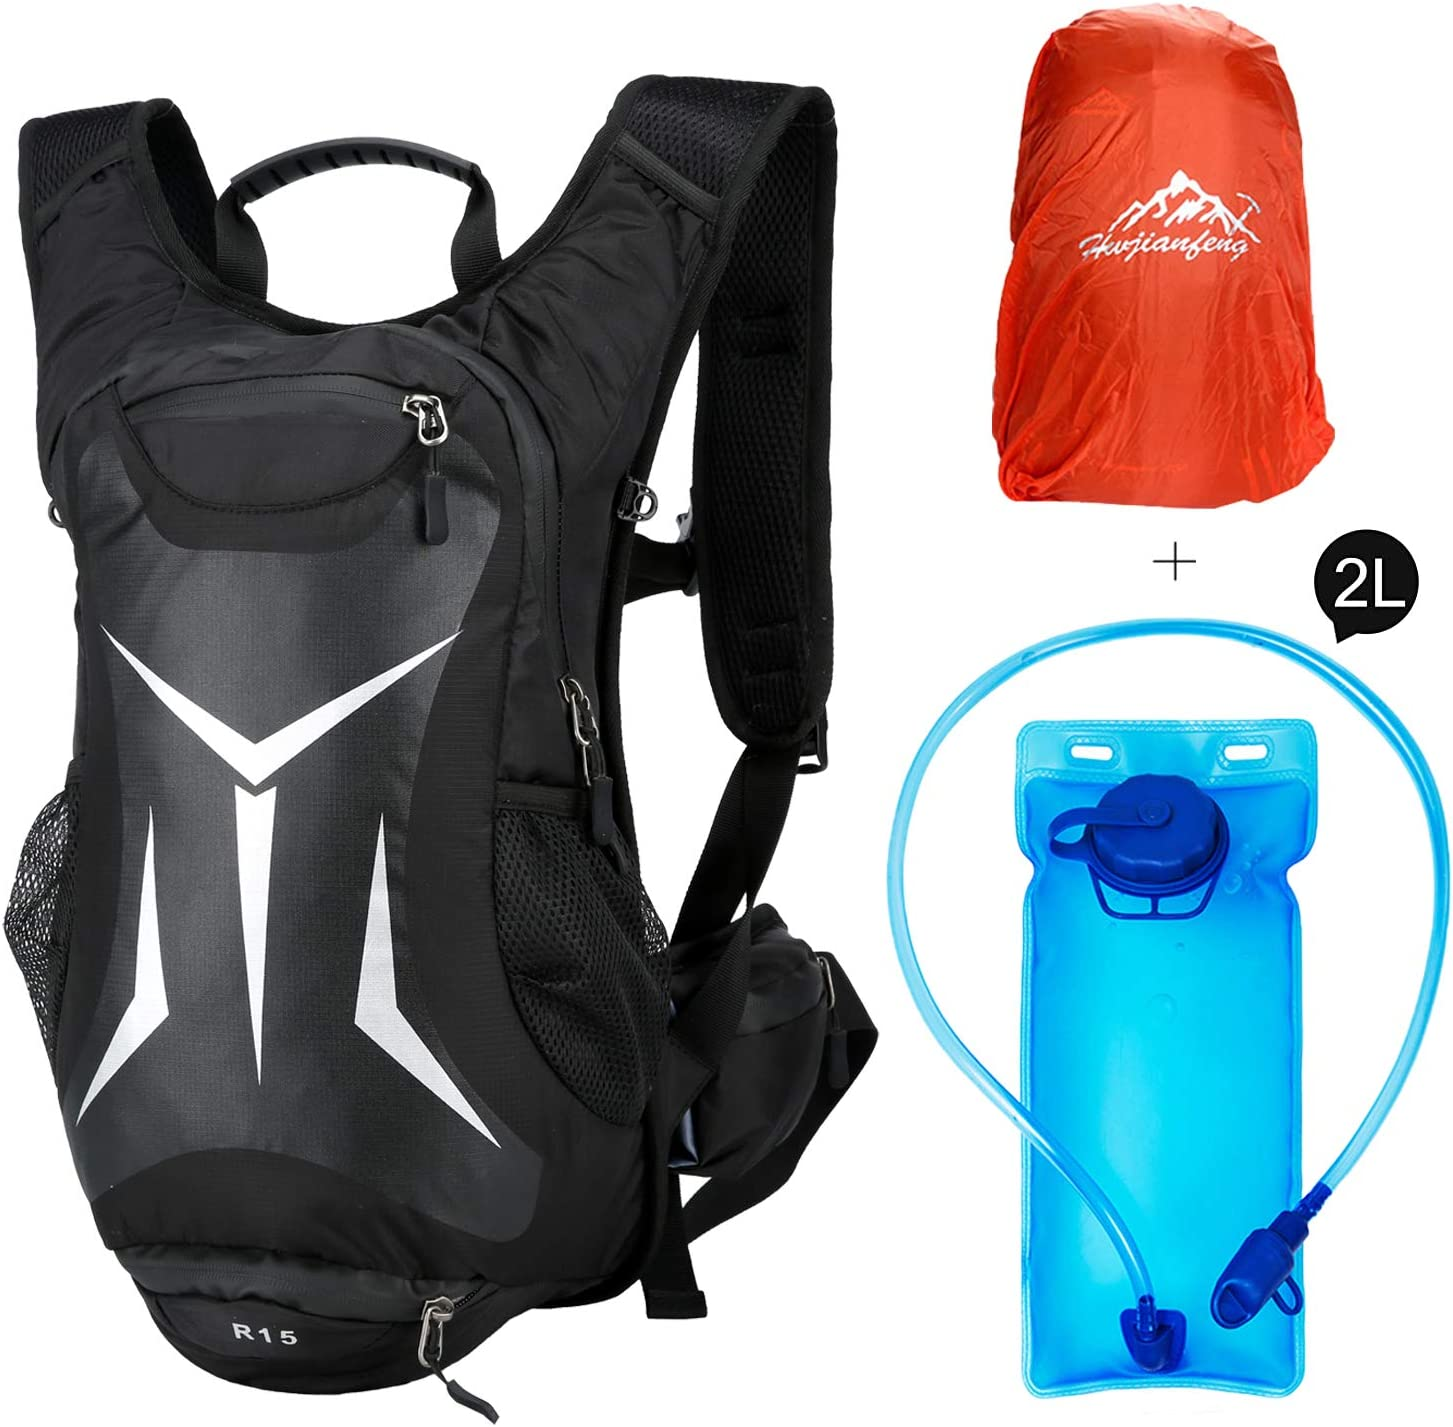 Hydration Pack Spring new work Backpack with Rain Cover Rare Water Bladd 2L